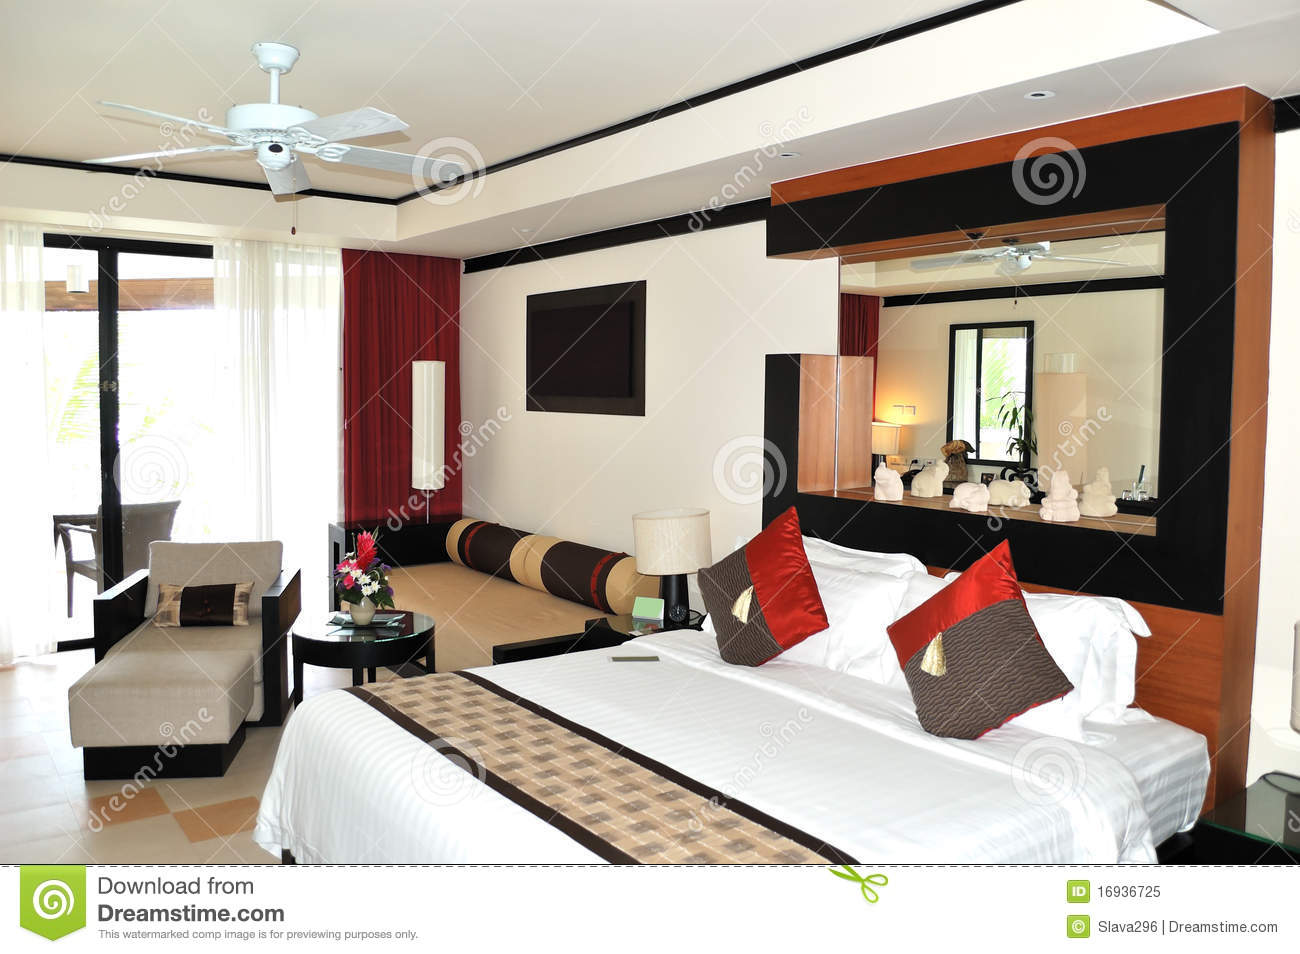 Chambre Hotel Luxe Moderne